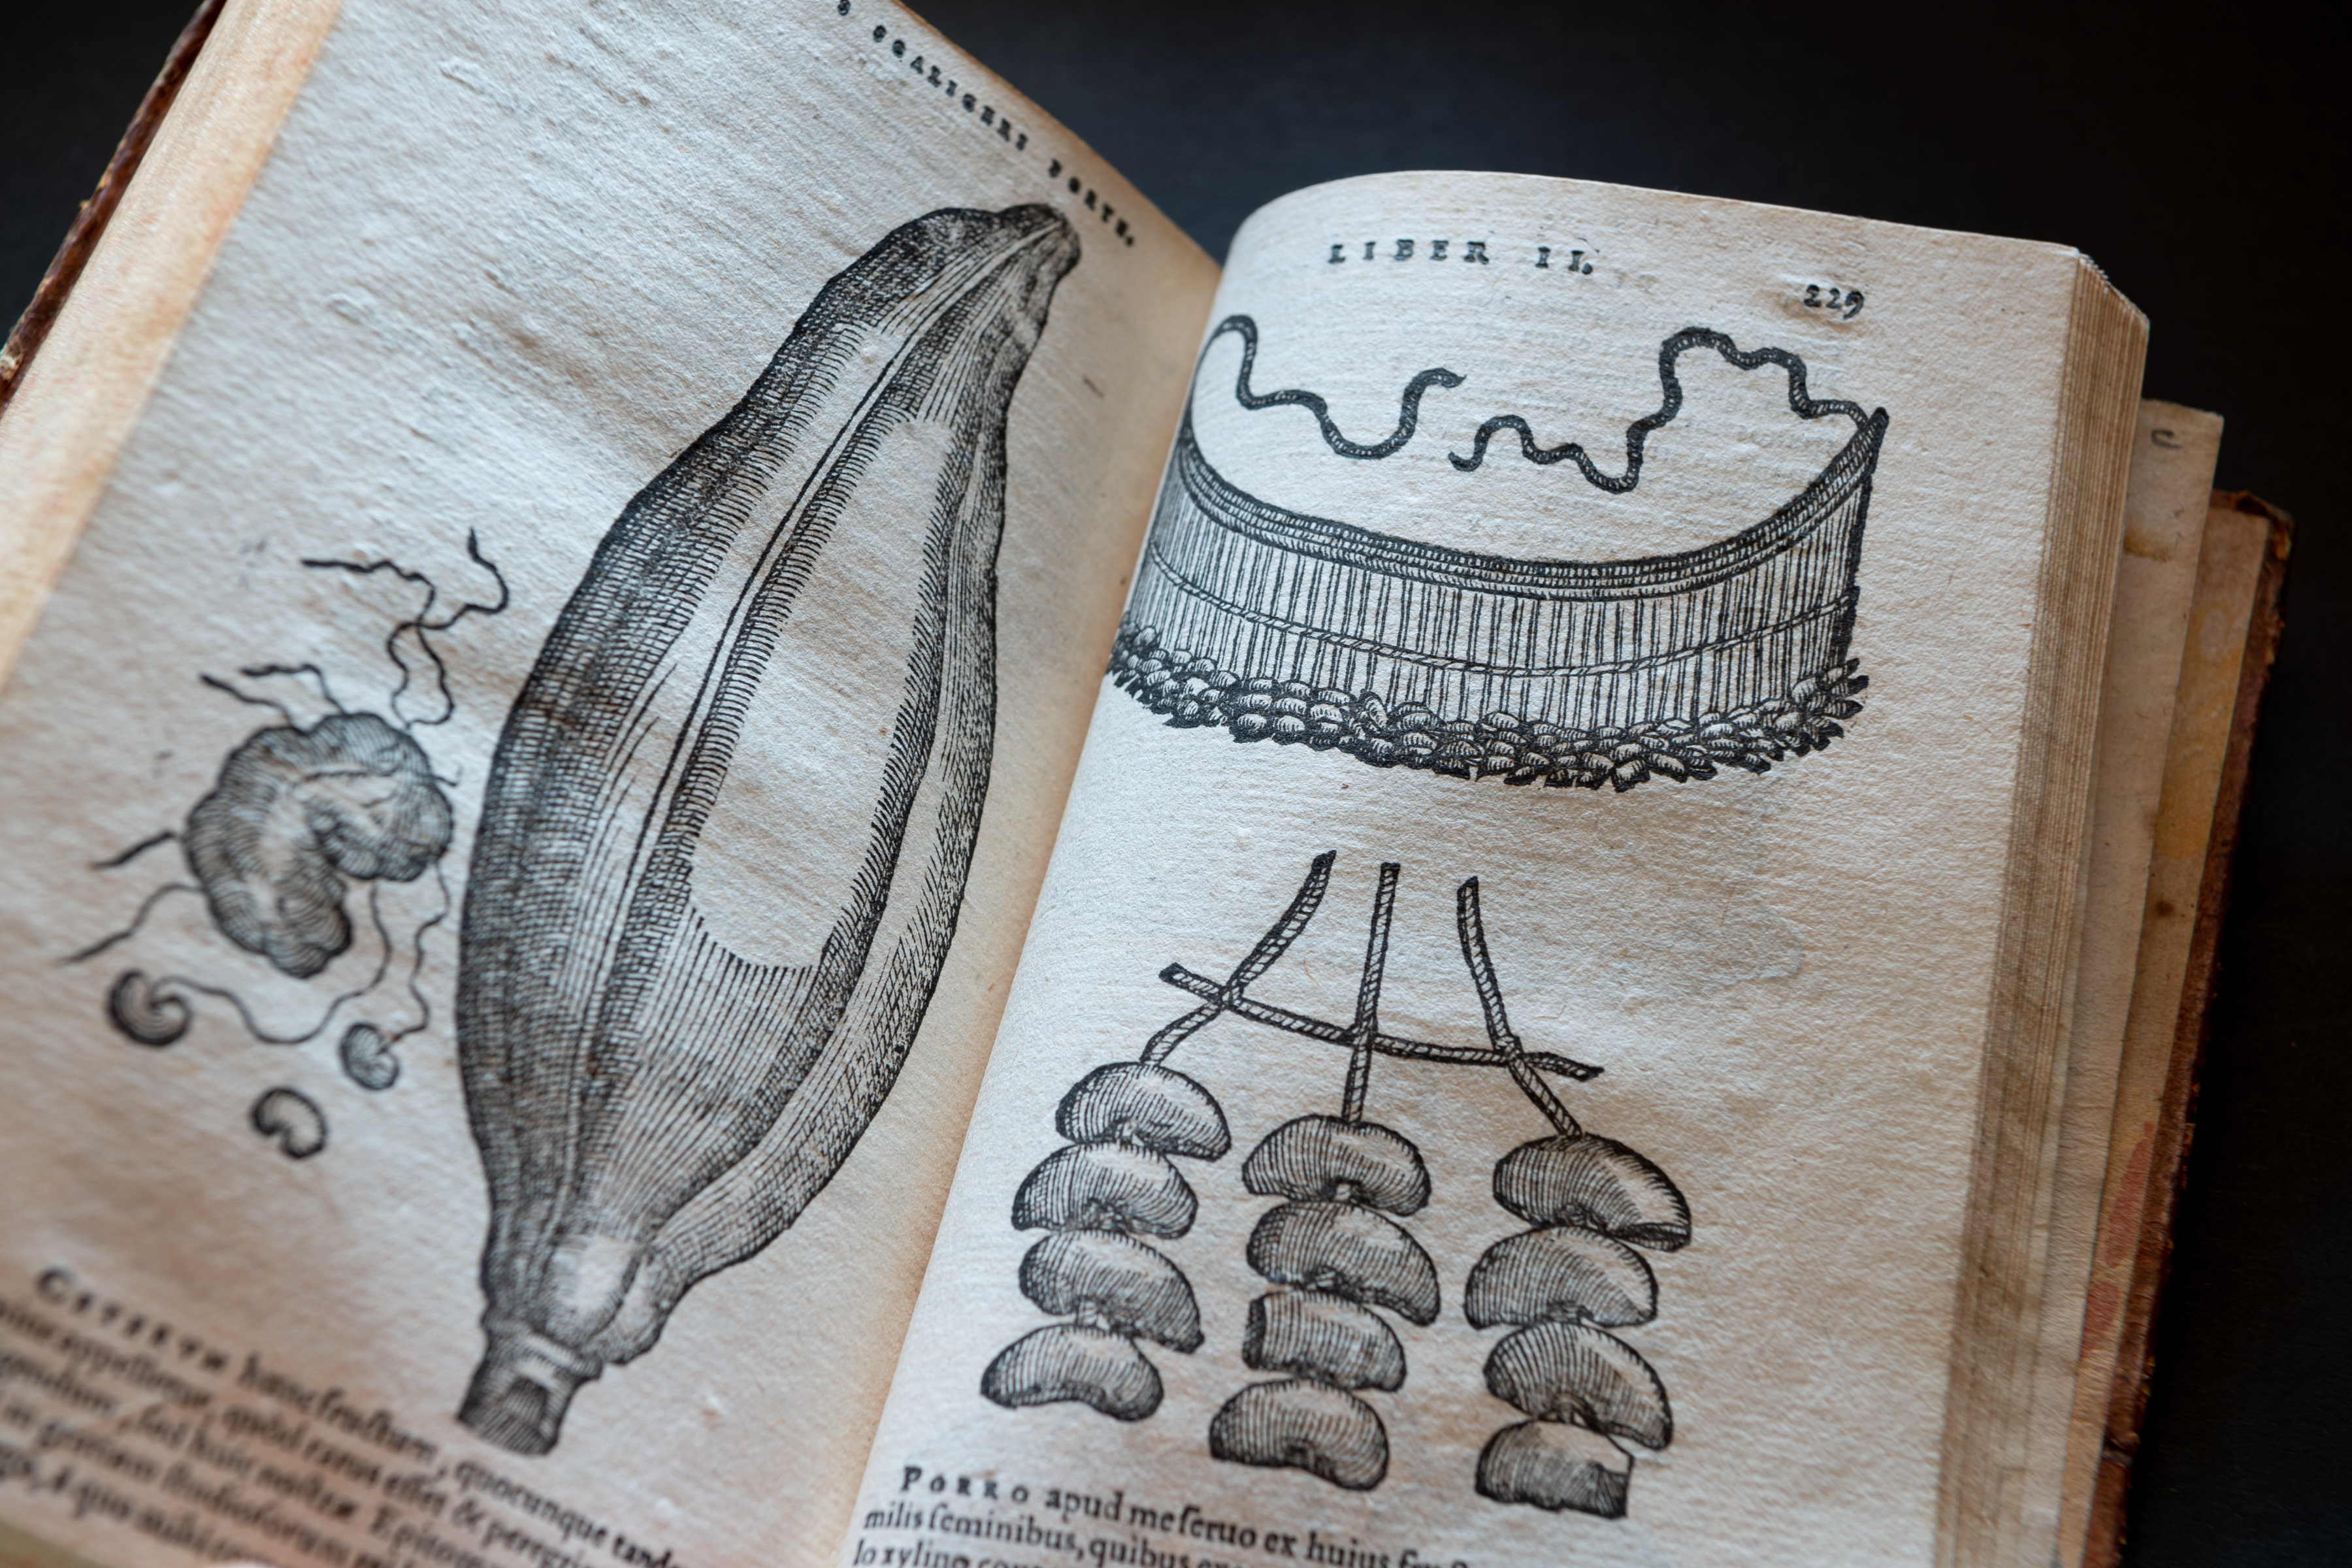 Detail of a printed book shows full-page illustrations of plants. Text in Latin also visible.